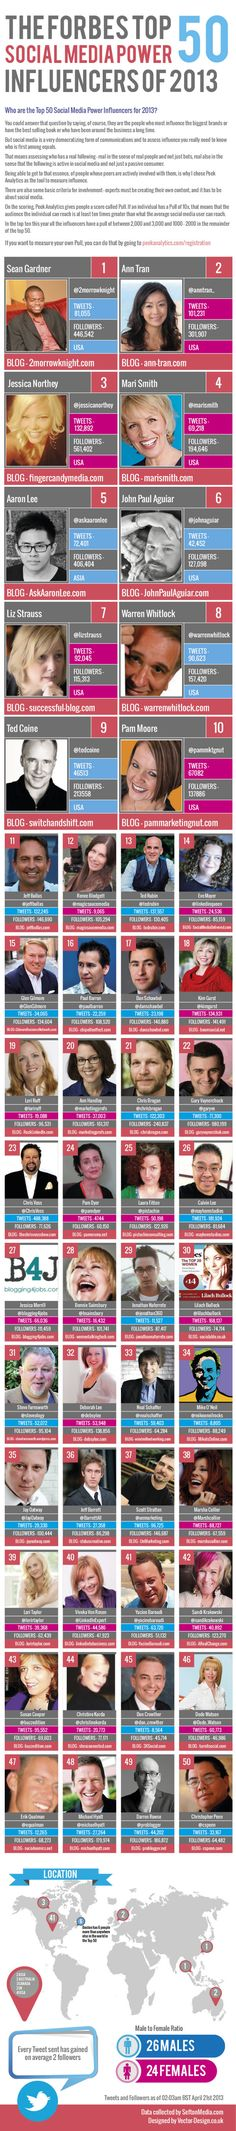 Forbes Top 50 Social Media Influencers 2013 Infographic